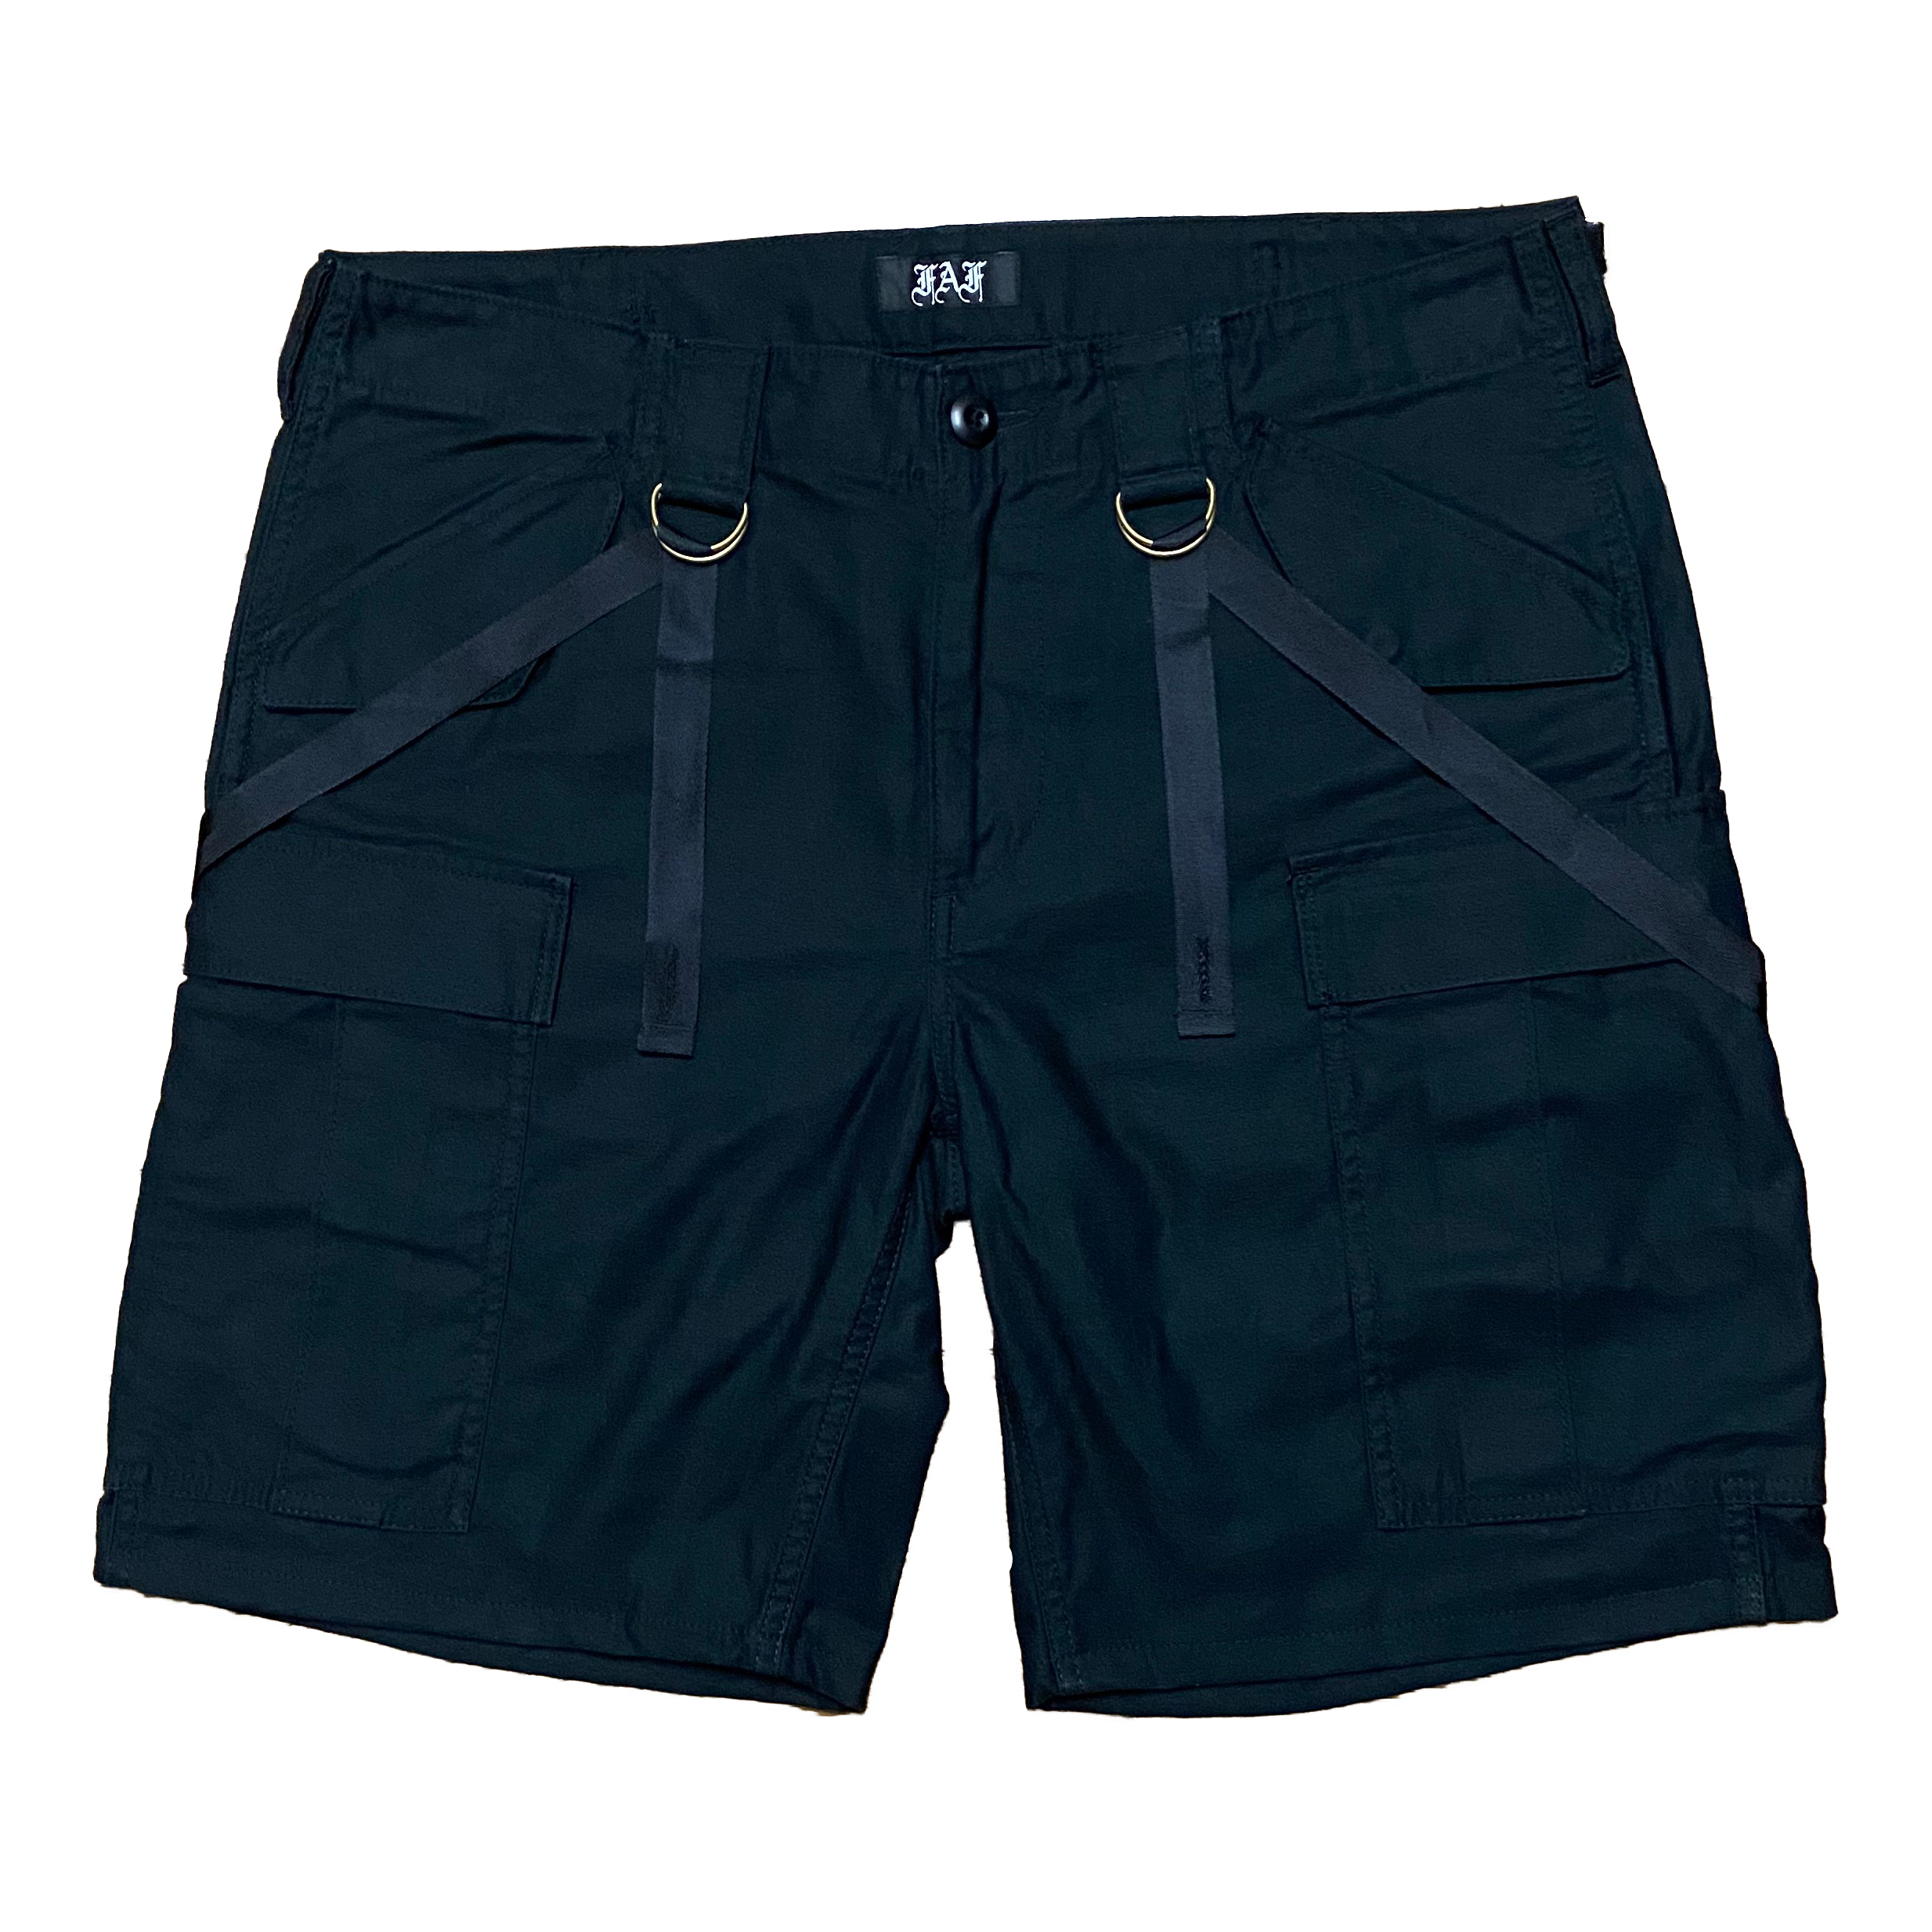 Peace Sign Cargo Shorts - 画像1